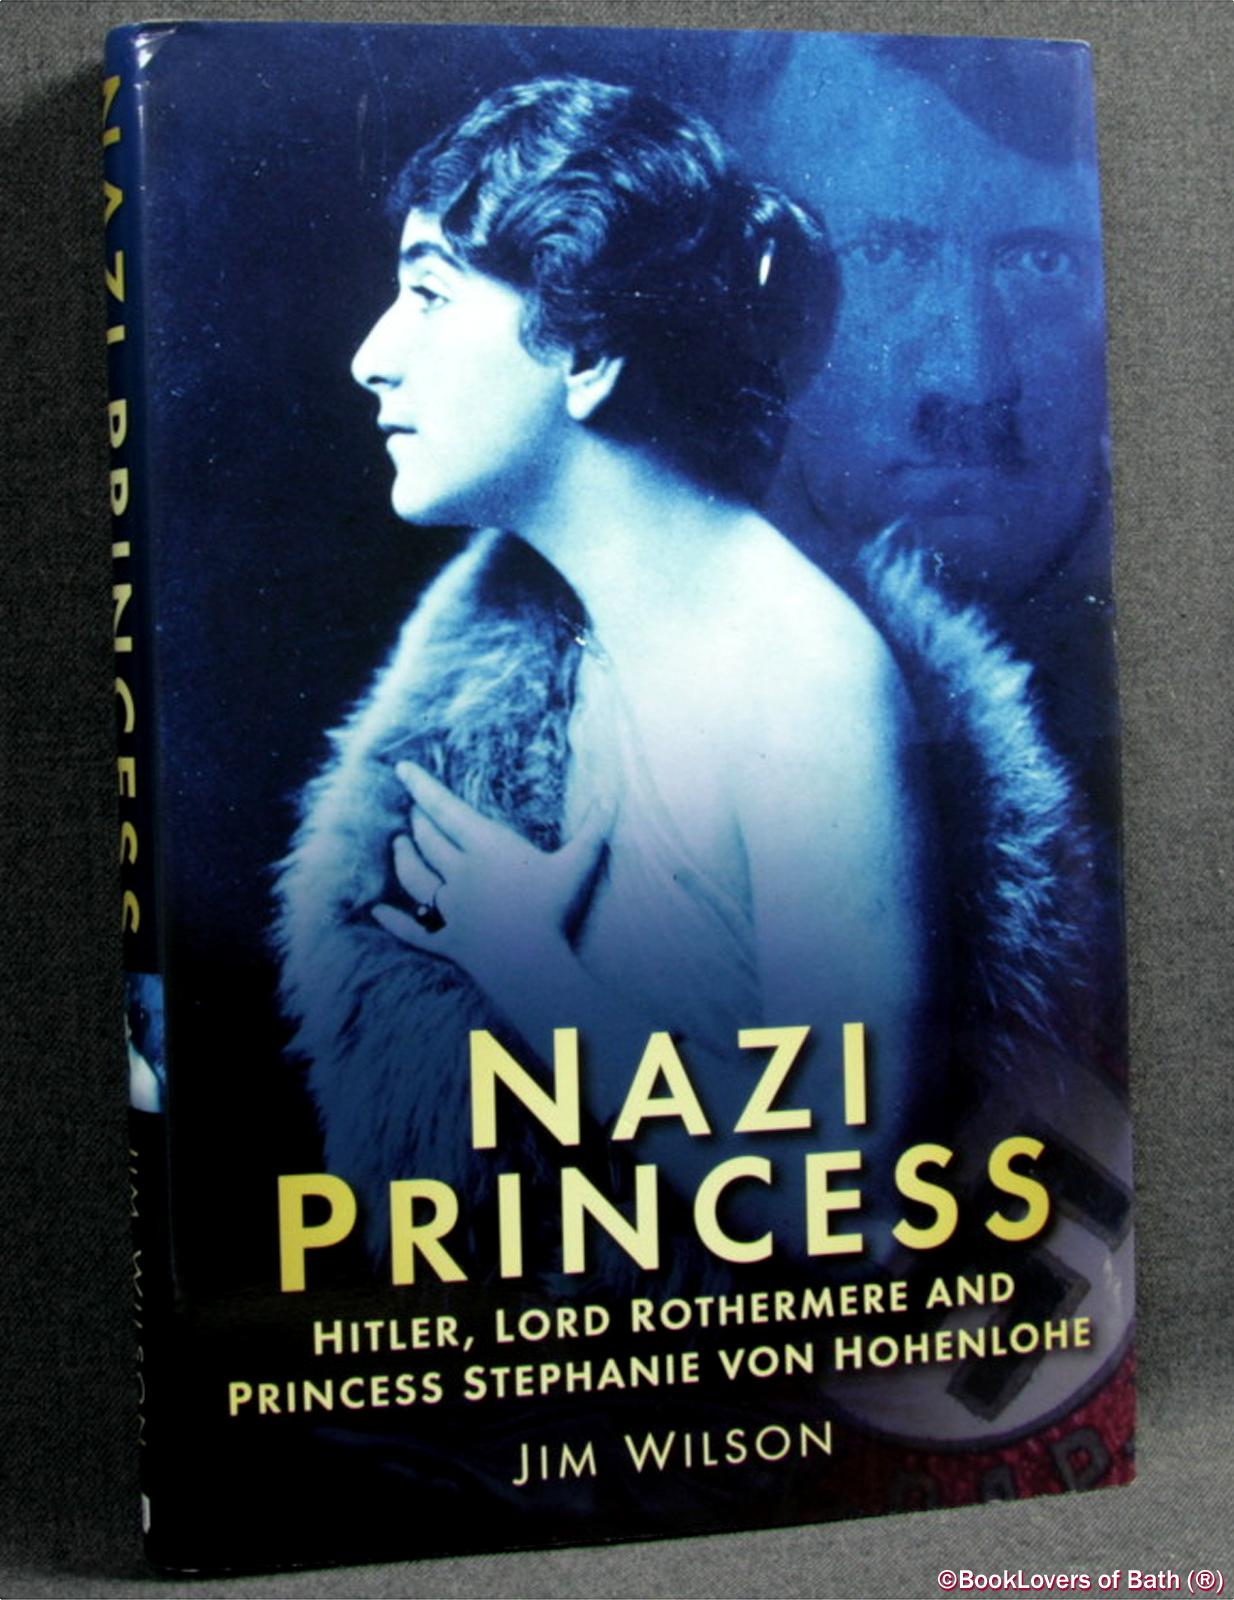 princess :: Second Hand Books from BookLovers of Bath